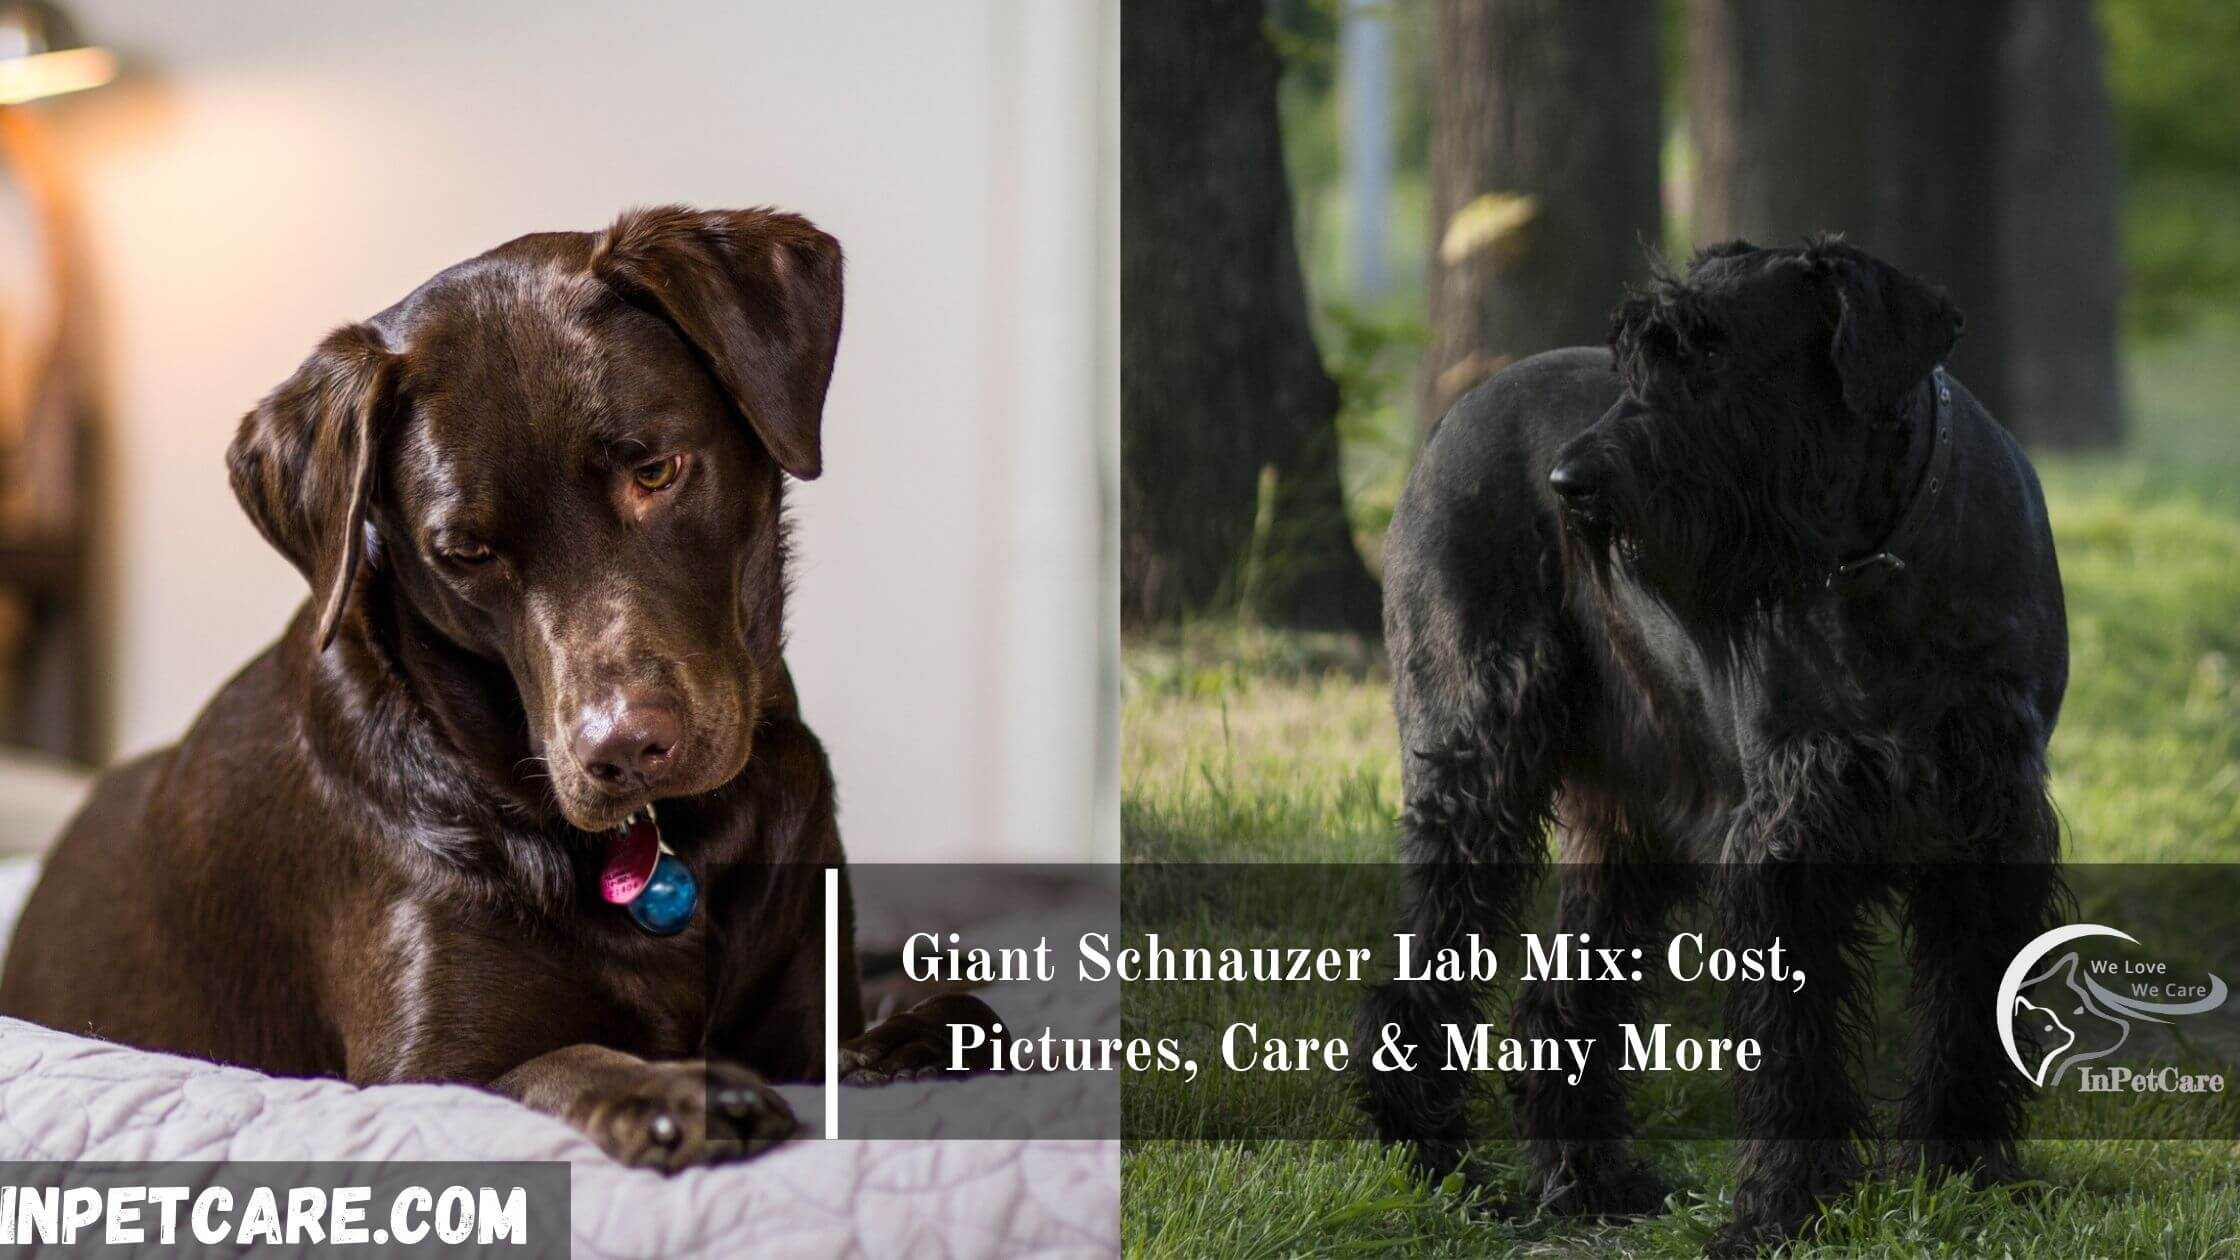 Giant Schnauzer Lab Mix: Cost, pictures, care & many more